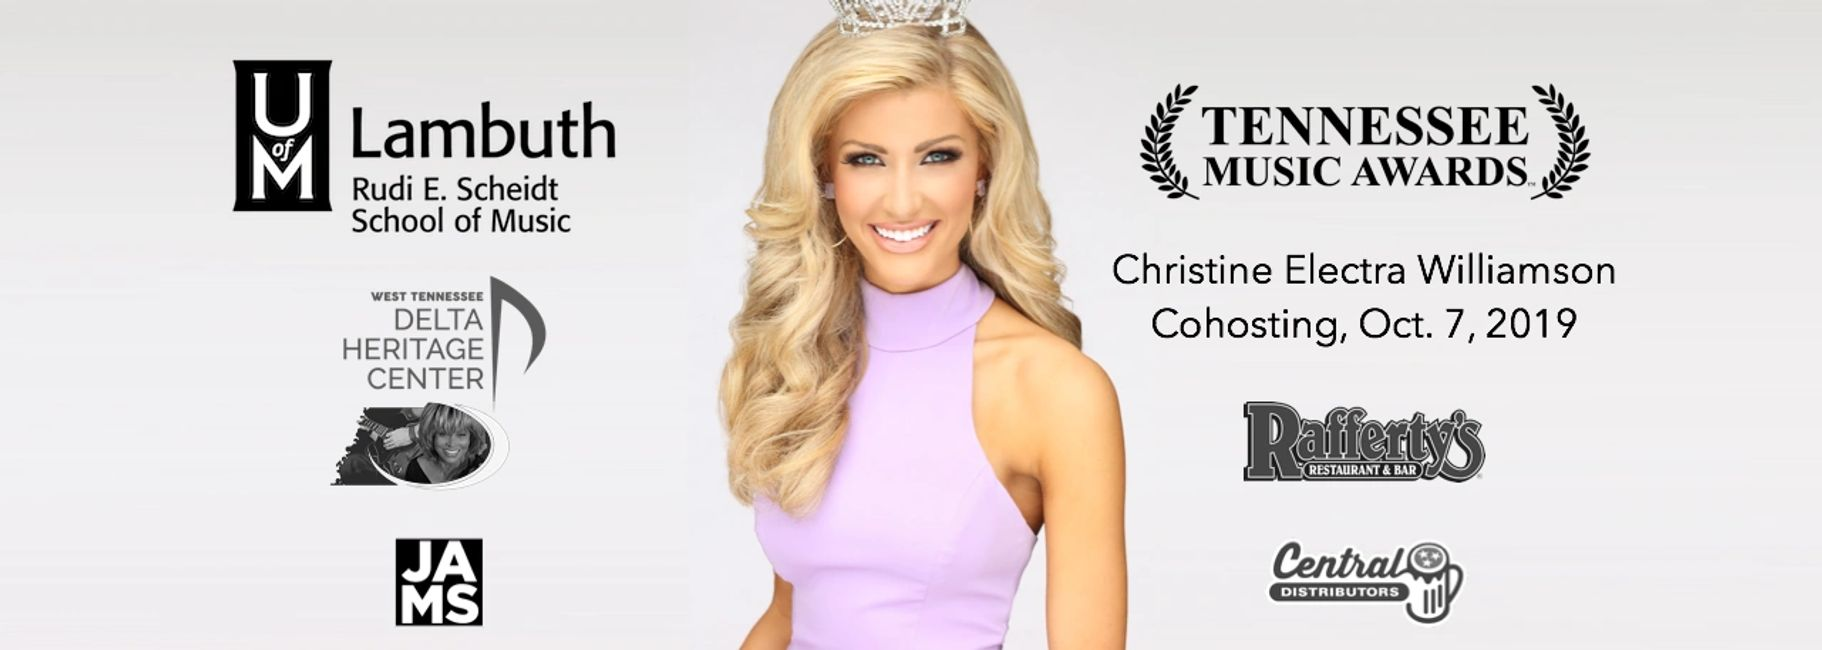 Christine Electra Williamson will cohost the Tennessee Music Awards on October 7th.